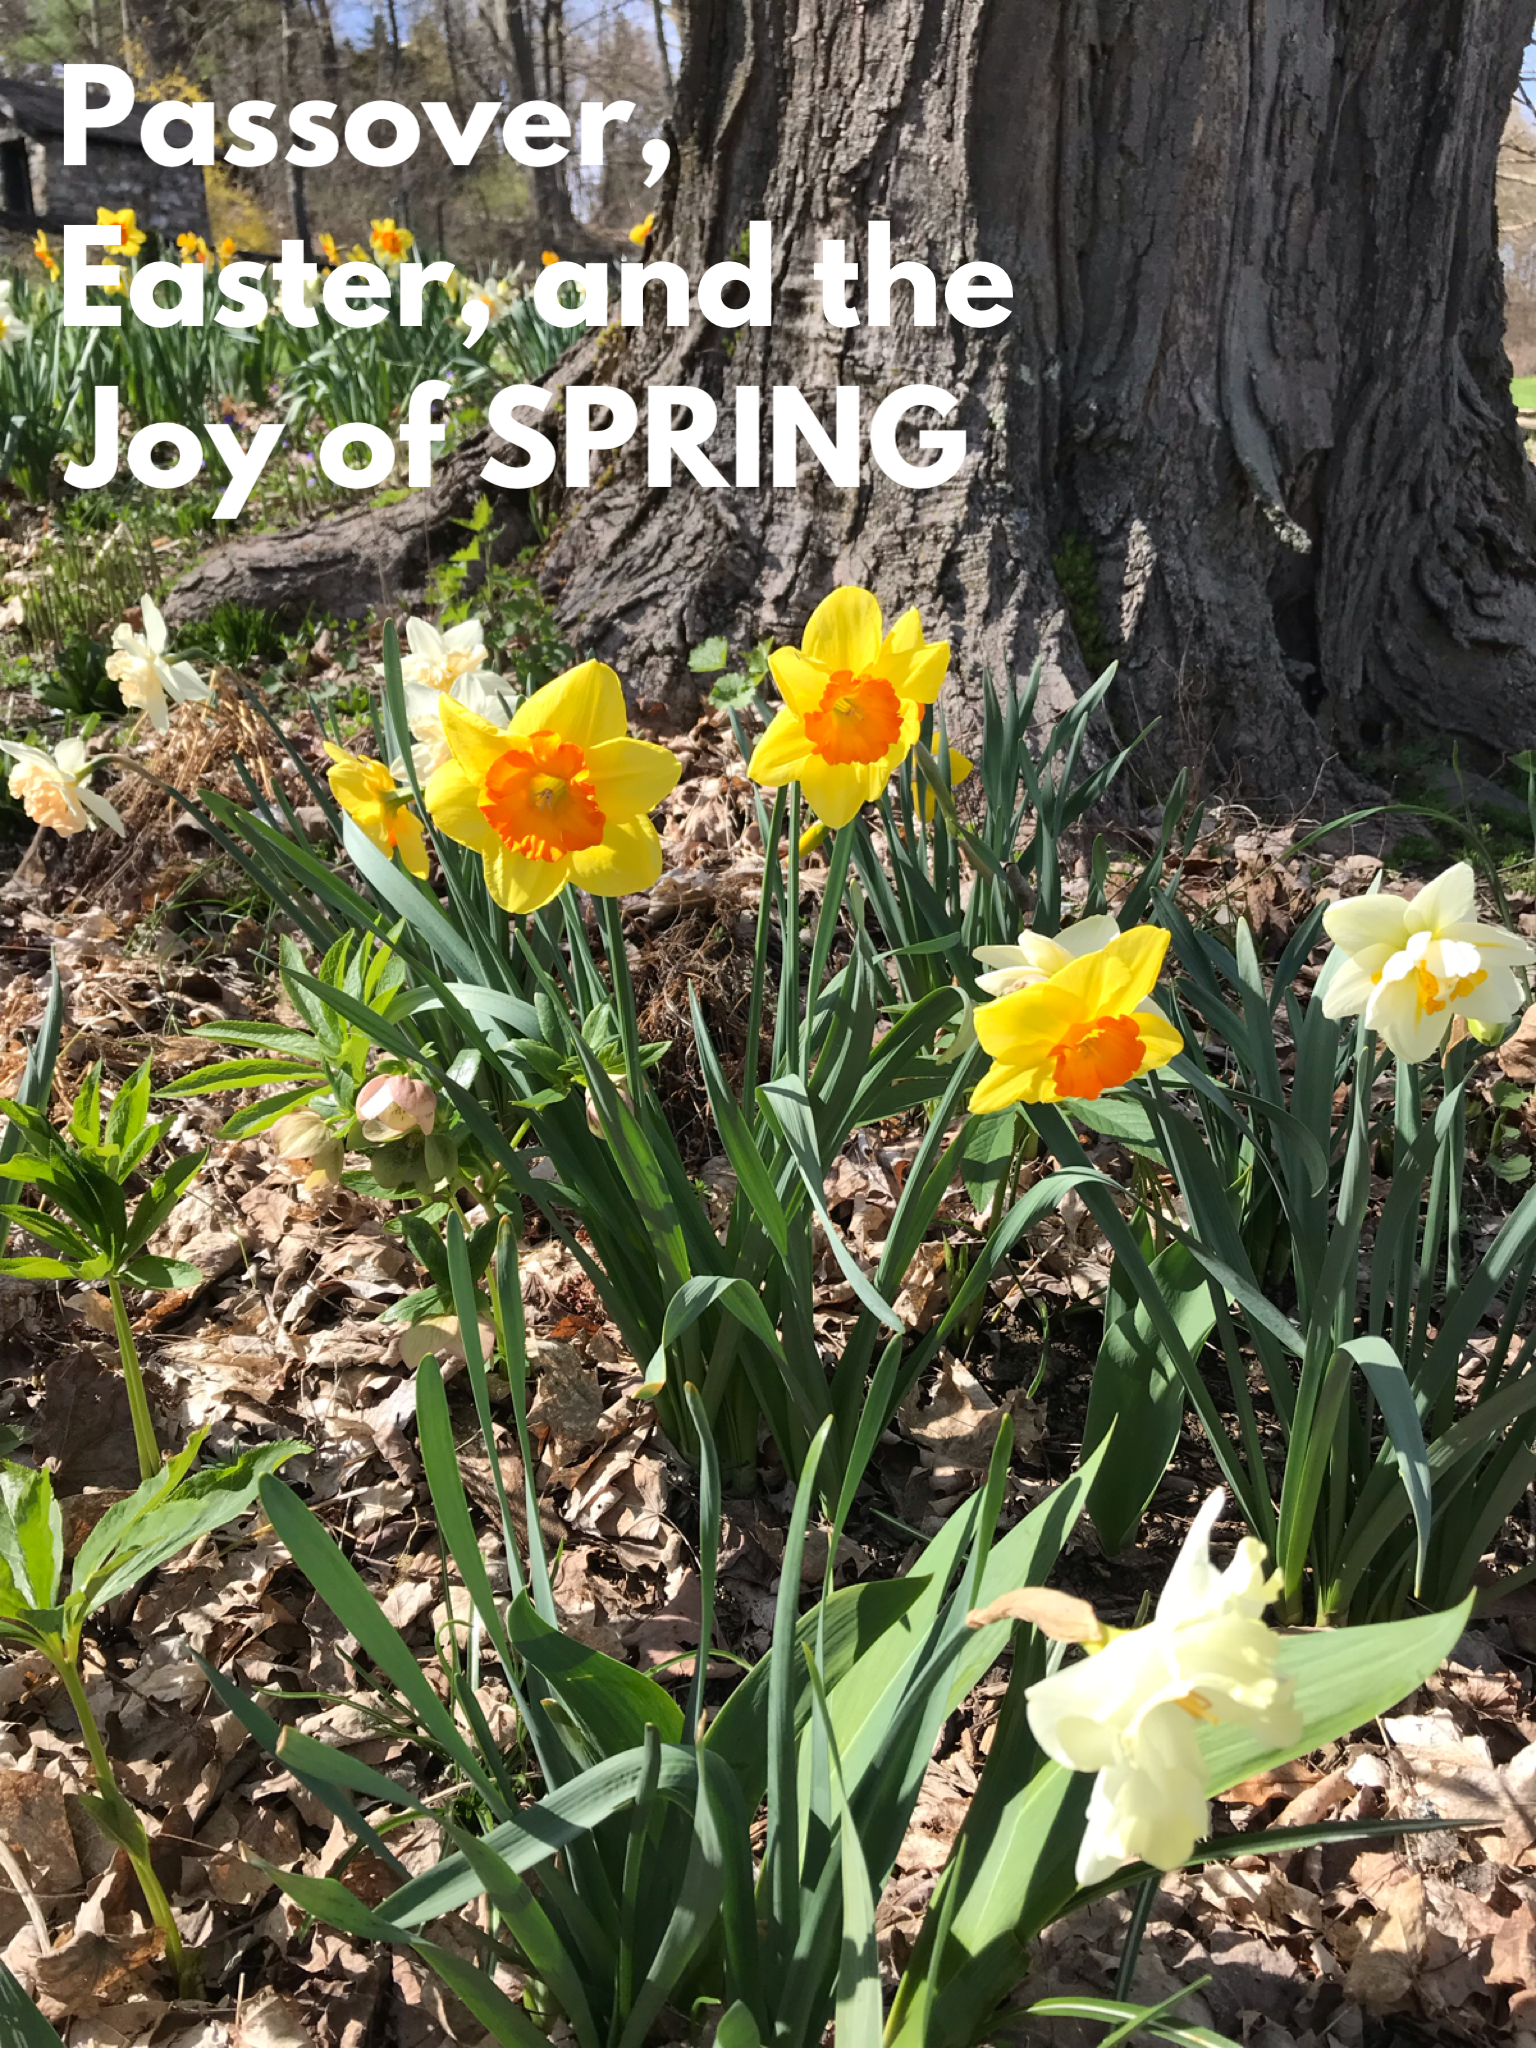 Passover, Easter and the Joy of Spring